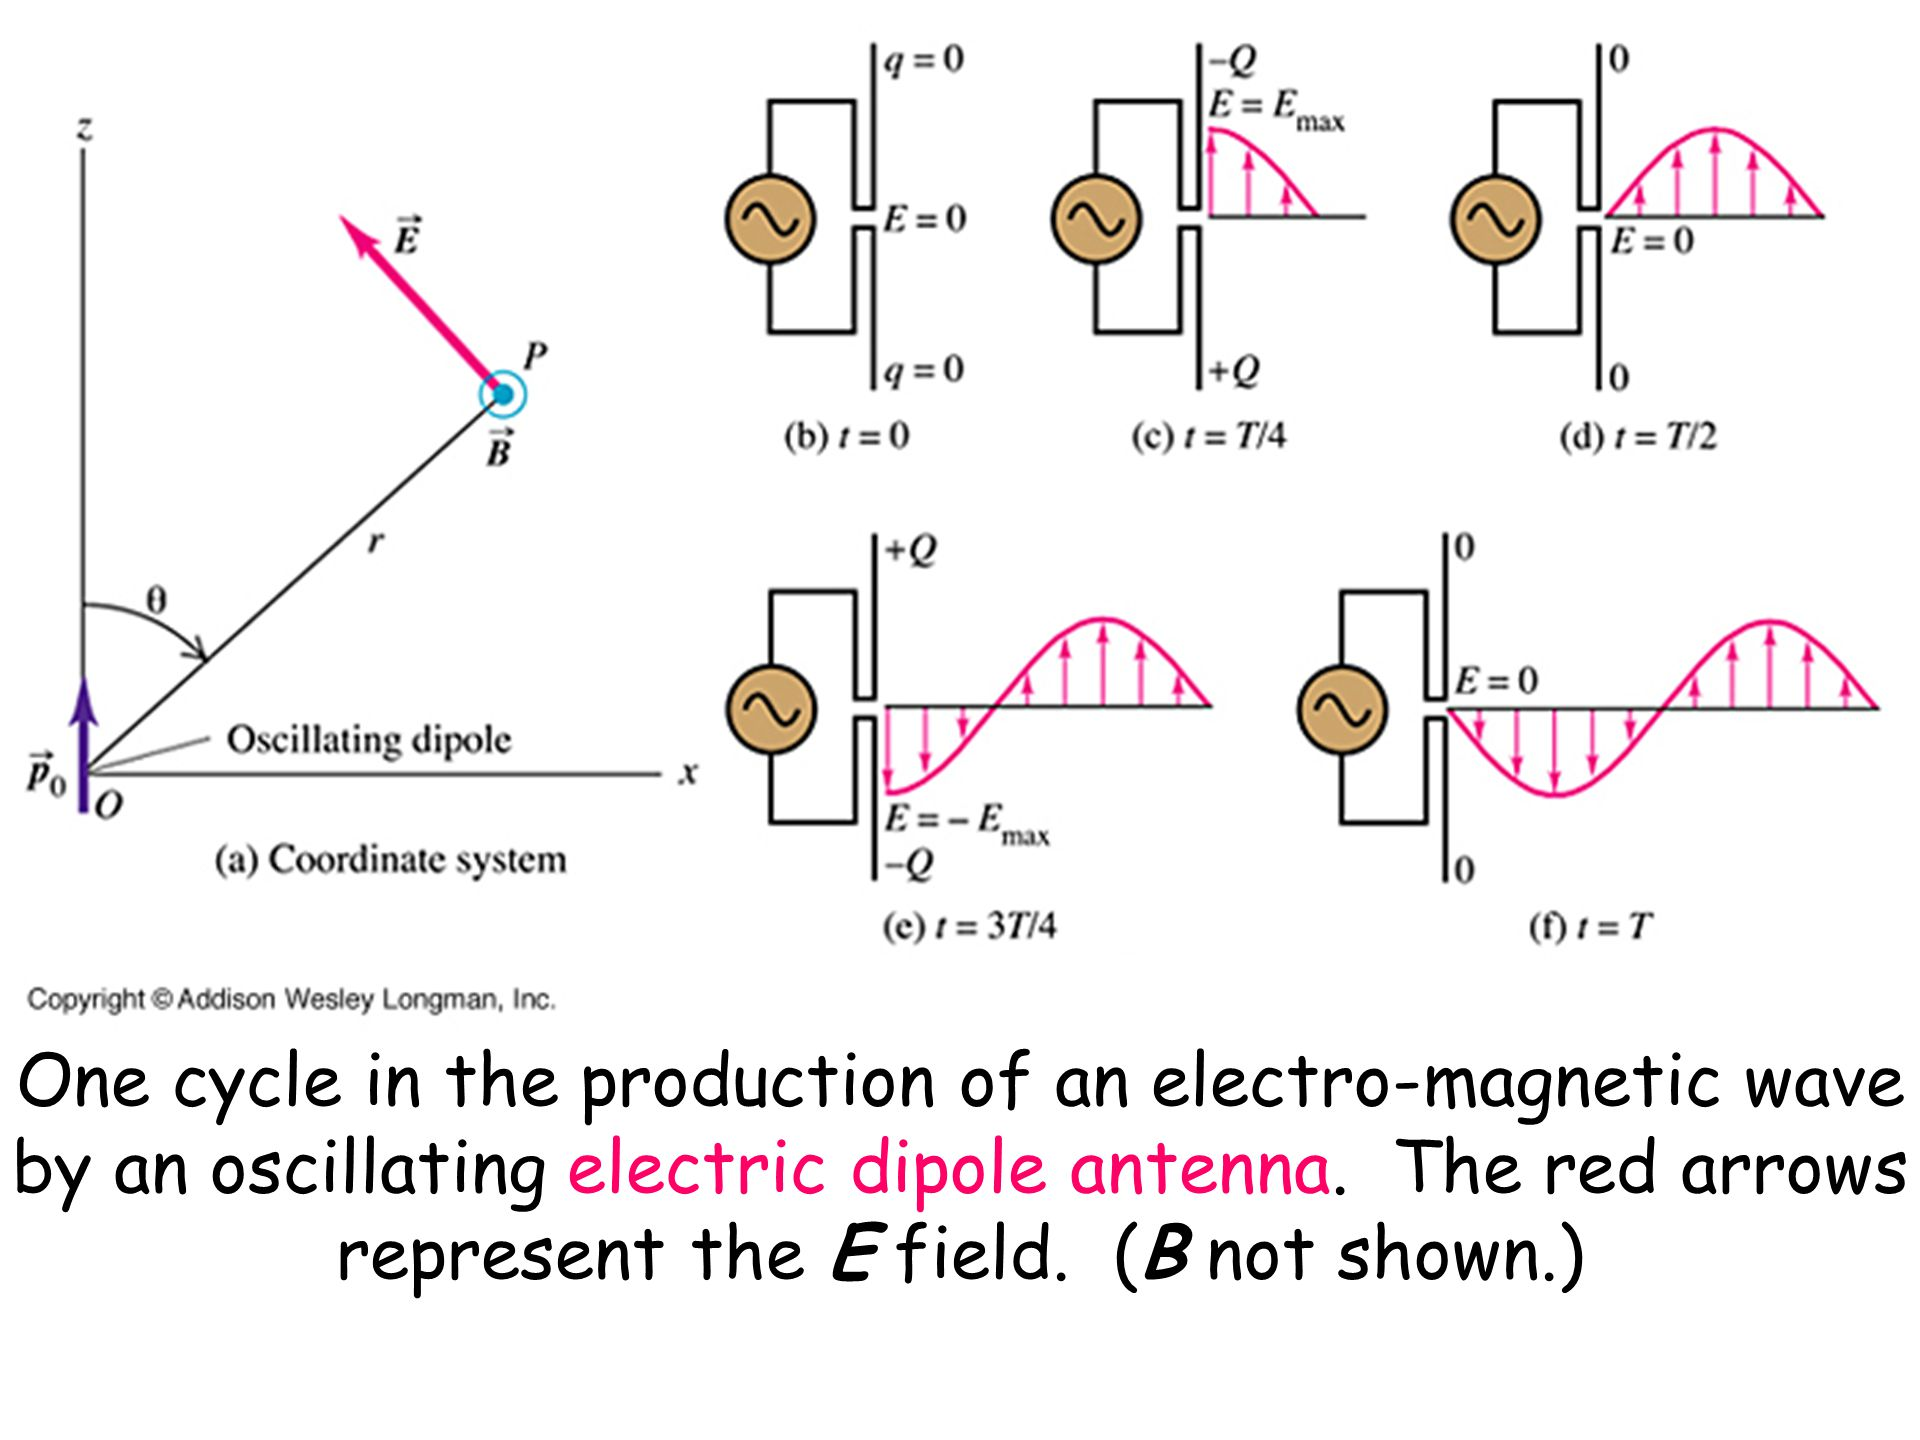 One cycle in the production of an electro-magnetic wave by an oscillating electric dipole antenna. The red arrows represent the E field. (B not shown.